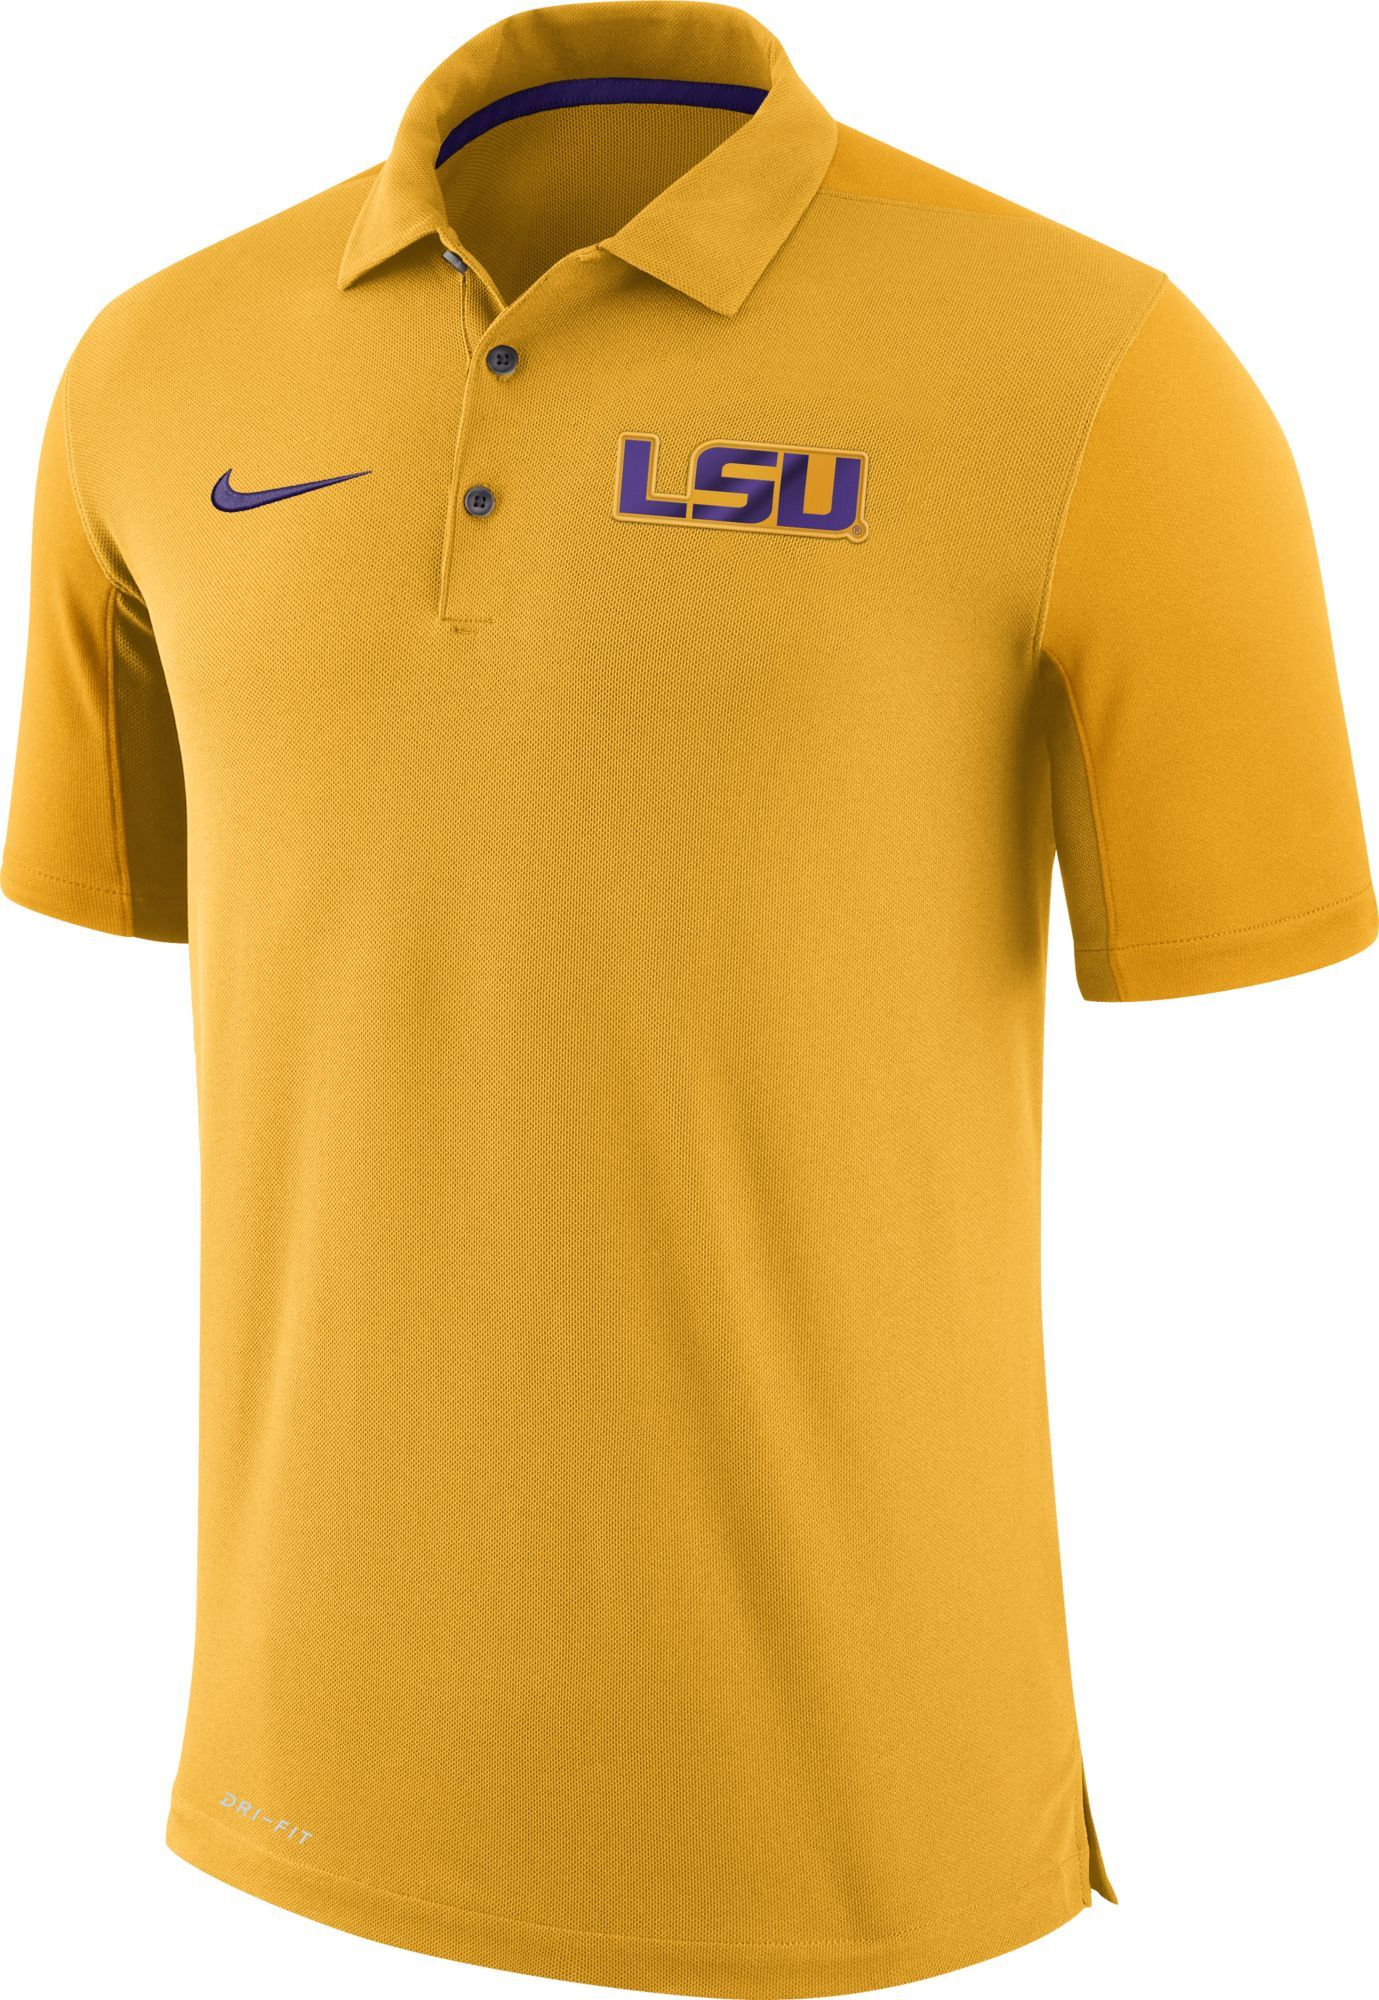 a4756823 Nike Men's LSU Tigers Gold Team Issue Football Sideline Performance ...